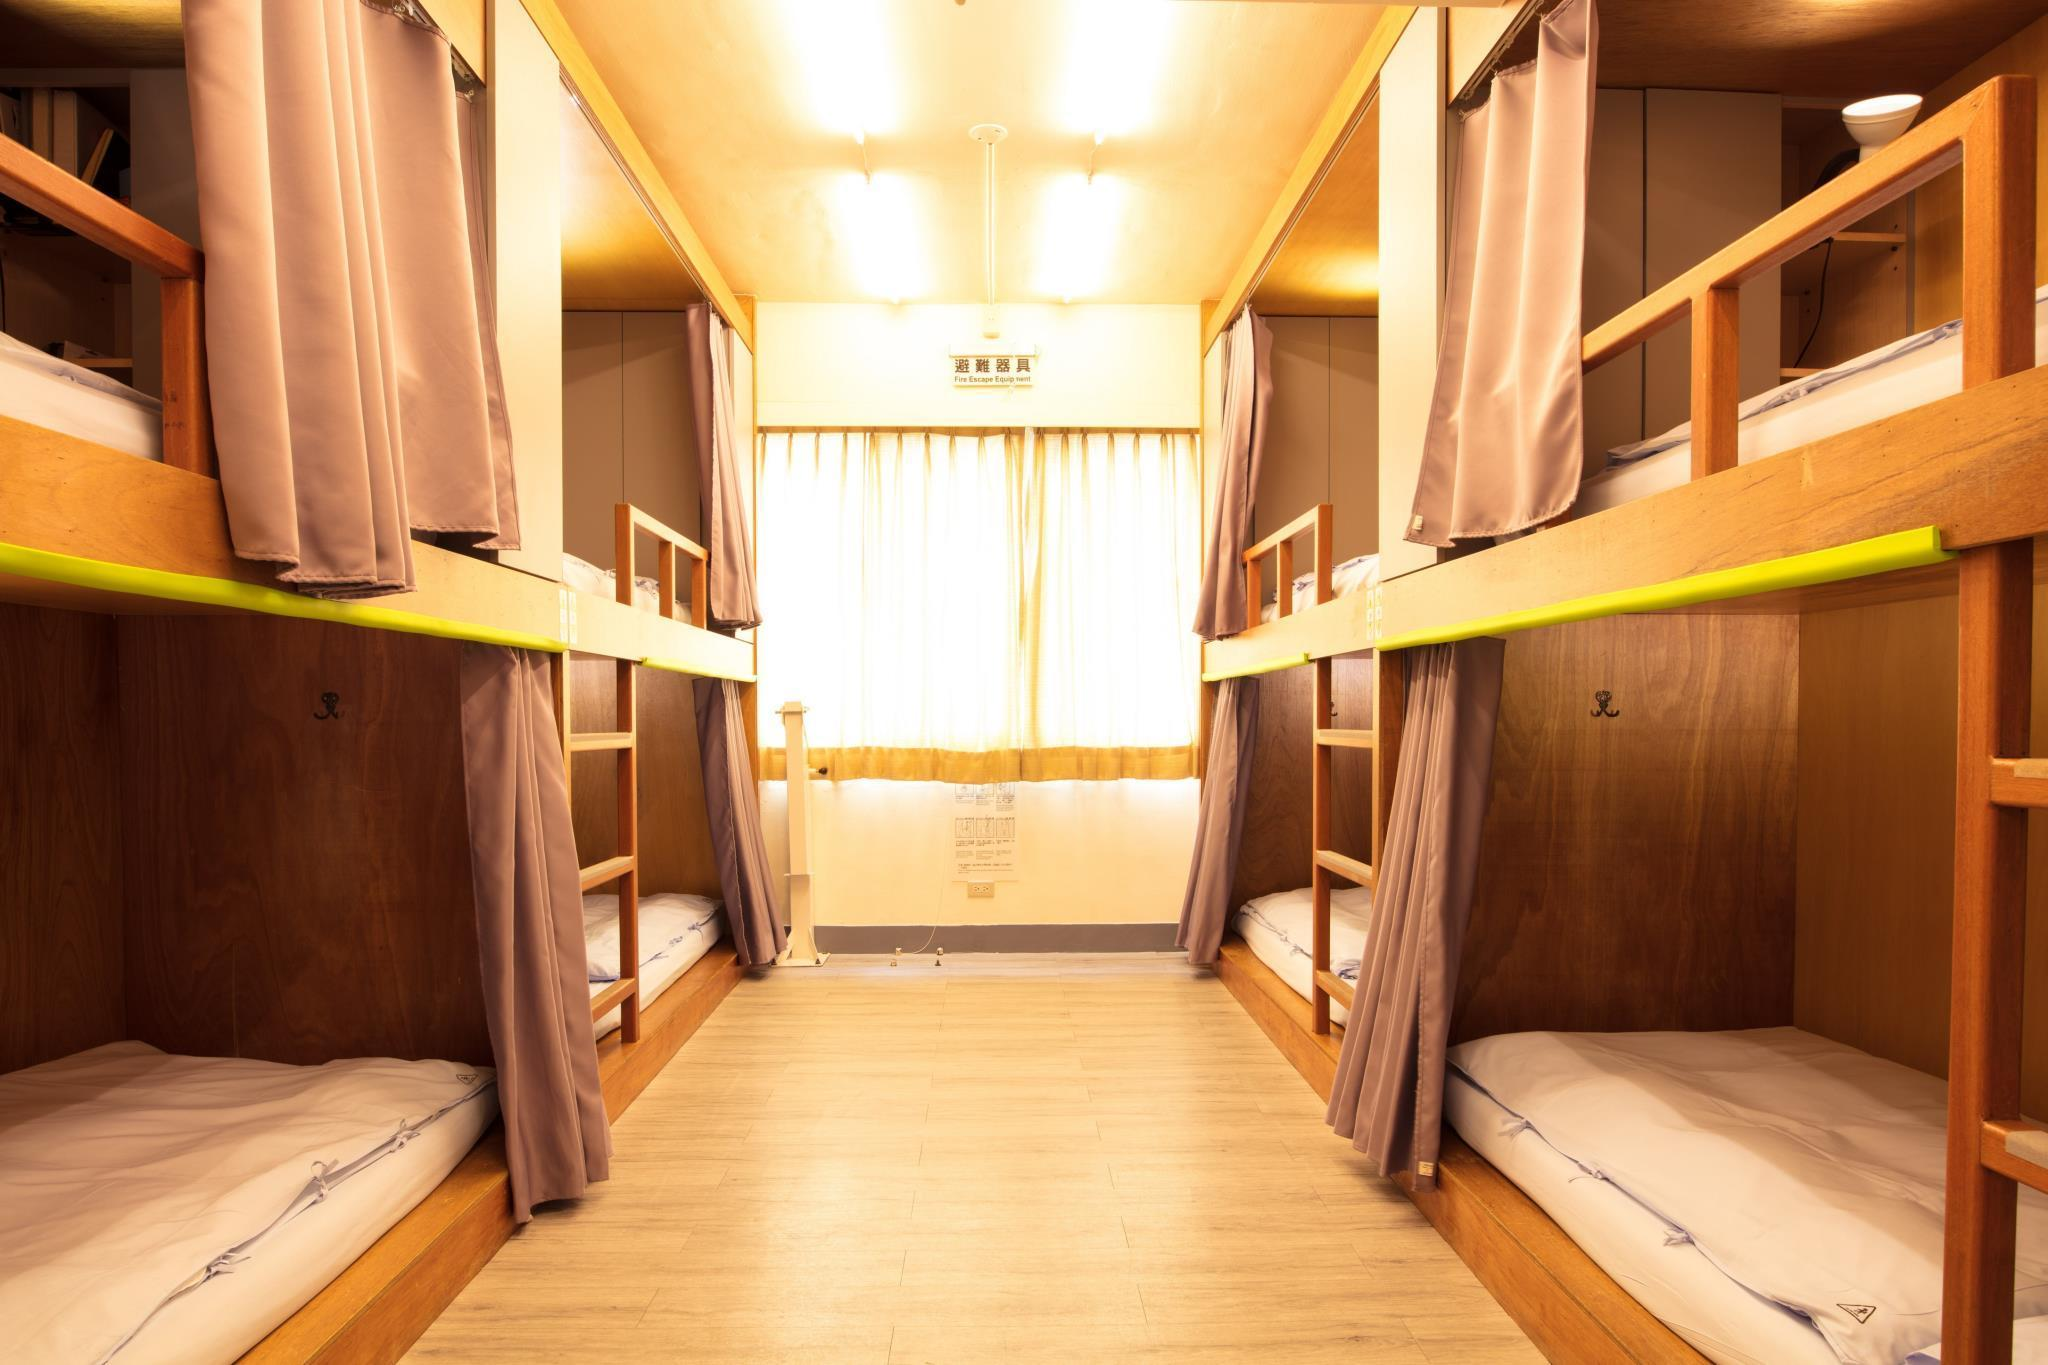 1 persona en habitación compartida de 8 camas ‒ Mixta (1 Person in 8-Bed Dormitory - Mixed)